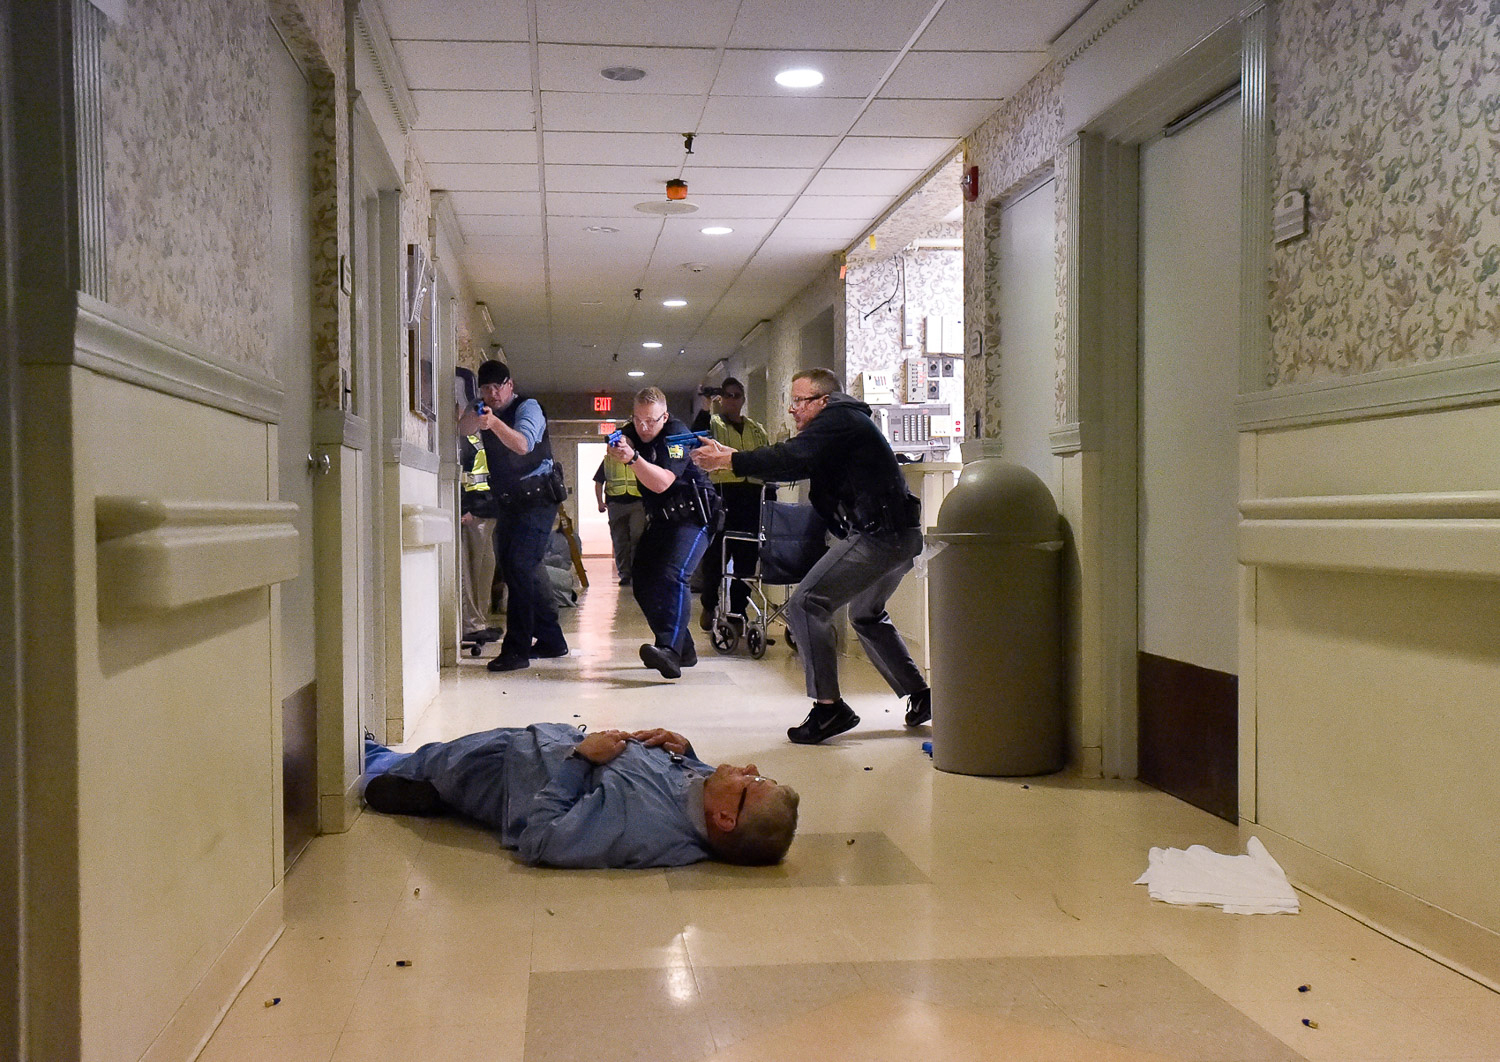 Nikon D4s, 1/400 @ f/4.5, ISO 16,000, 17-35mm  Melrose Police Sgt. Josh Crowley, Patrolman Dale Parsons and Sgt. Dave Mackey take part in an active shooter drill inside Wingate at Melrose, Friday, May 12, 2017. [Wicked Local Staff Photo / David Sokol]